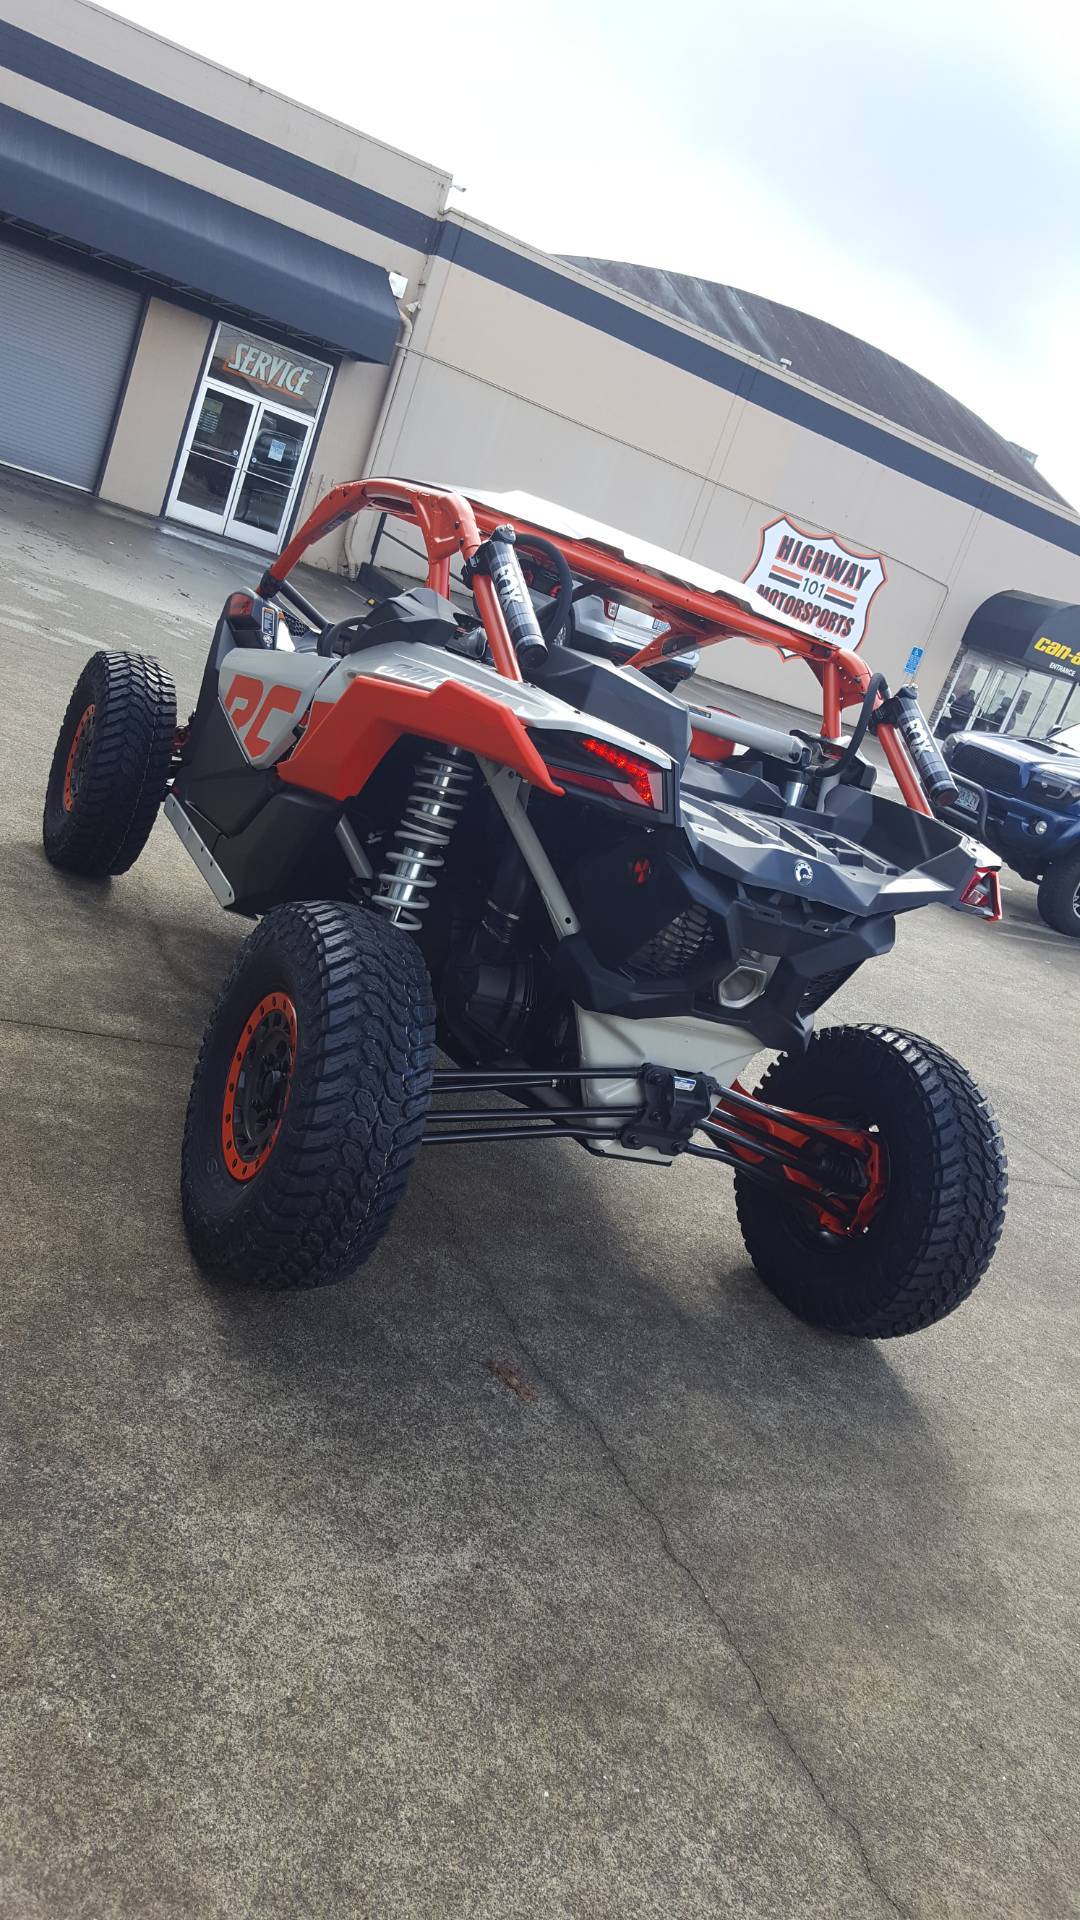 2021 Can-Am Maverick X3 X RC Turbo RR in Coos Bay, Oregon - Photo 4